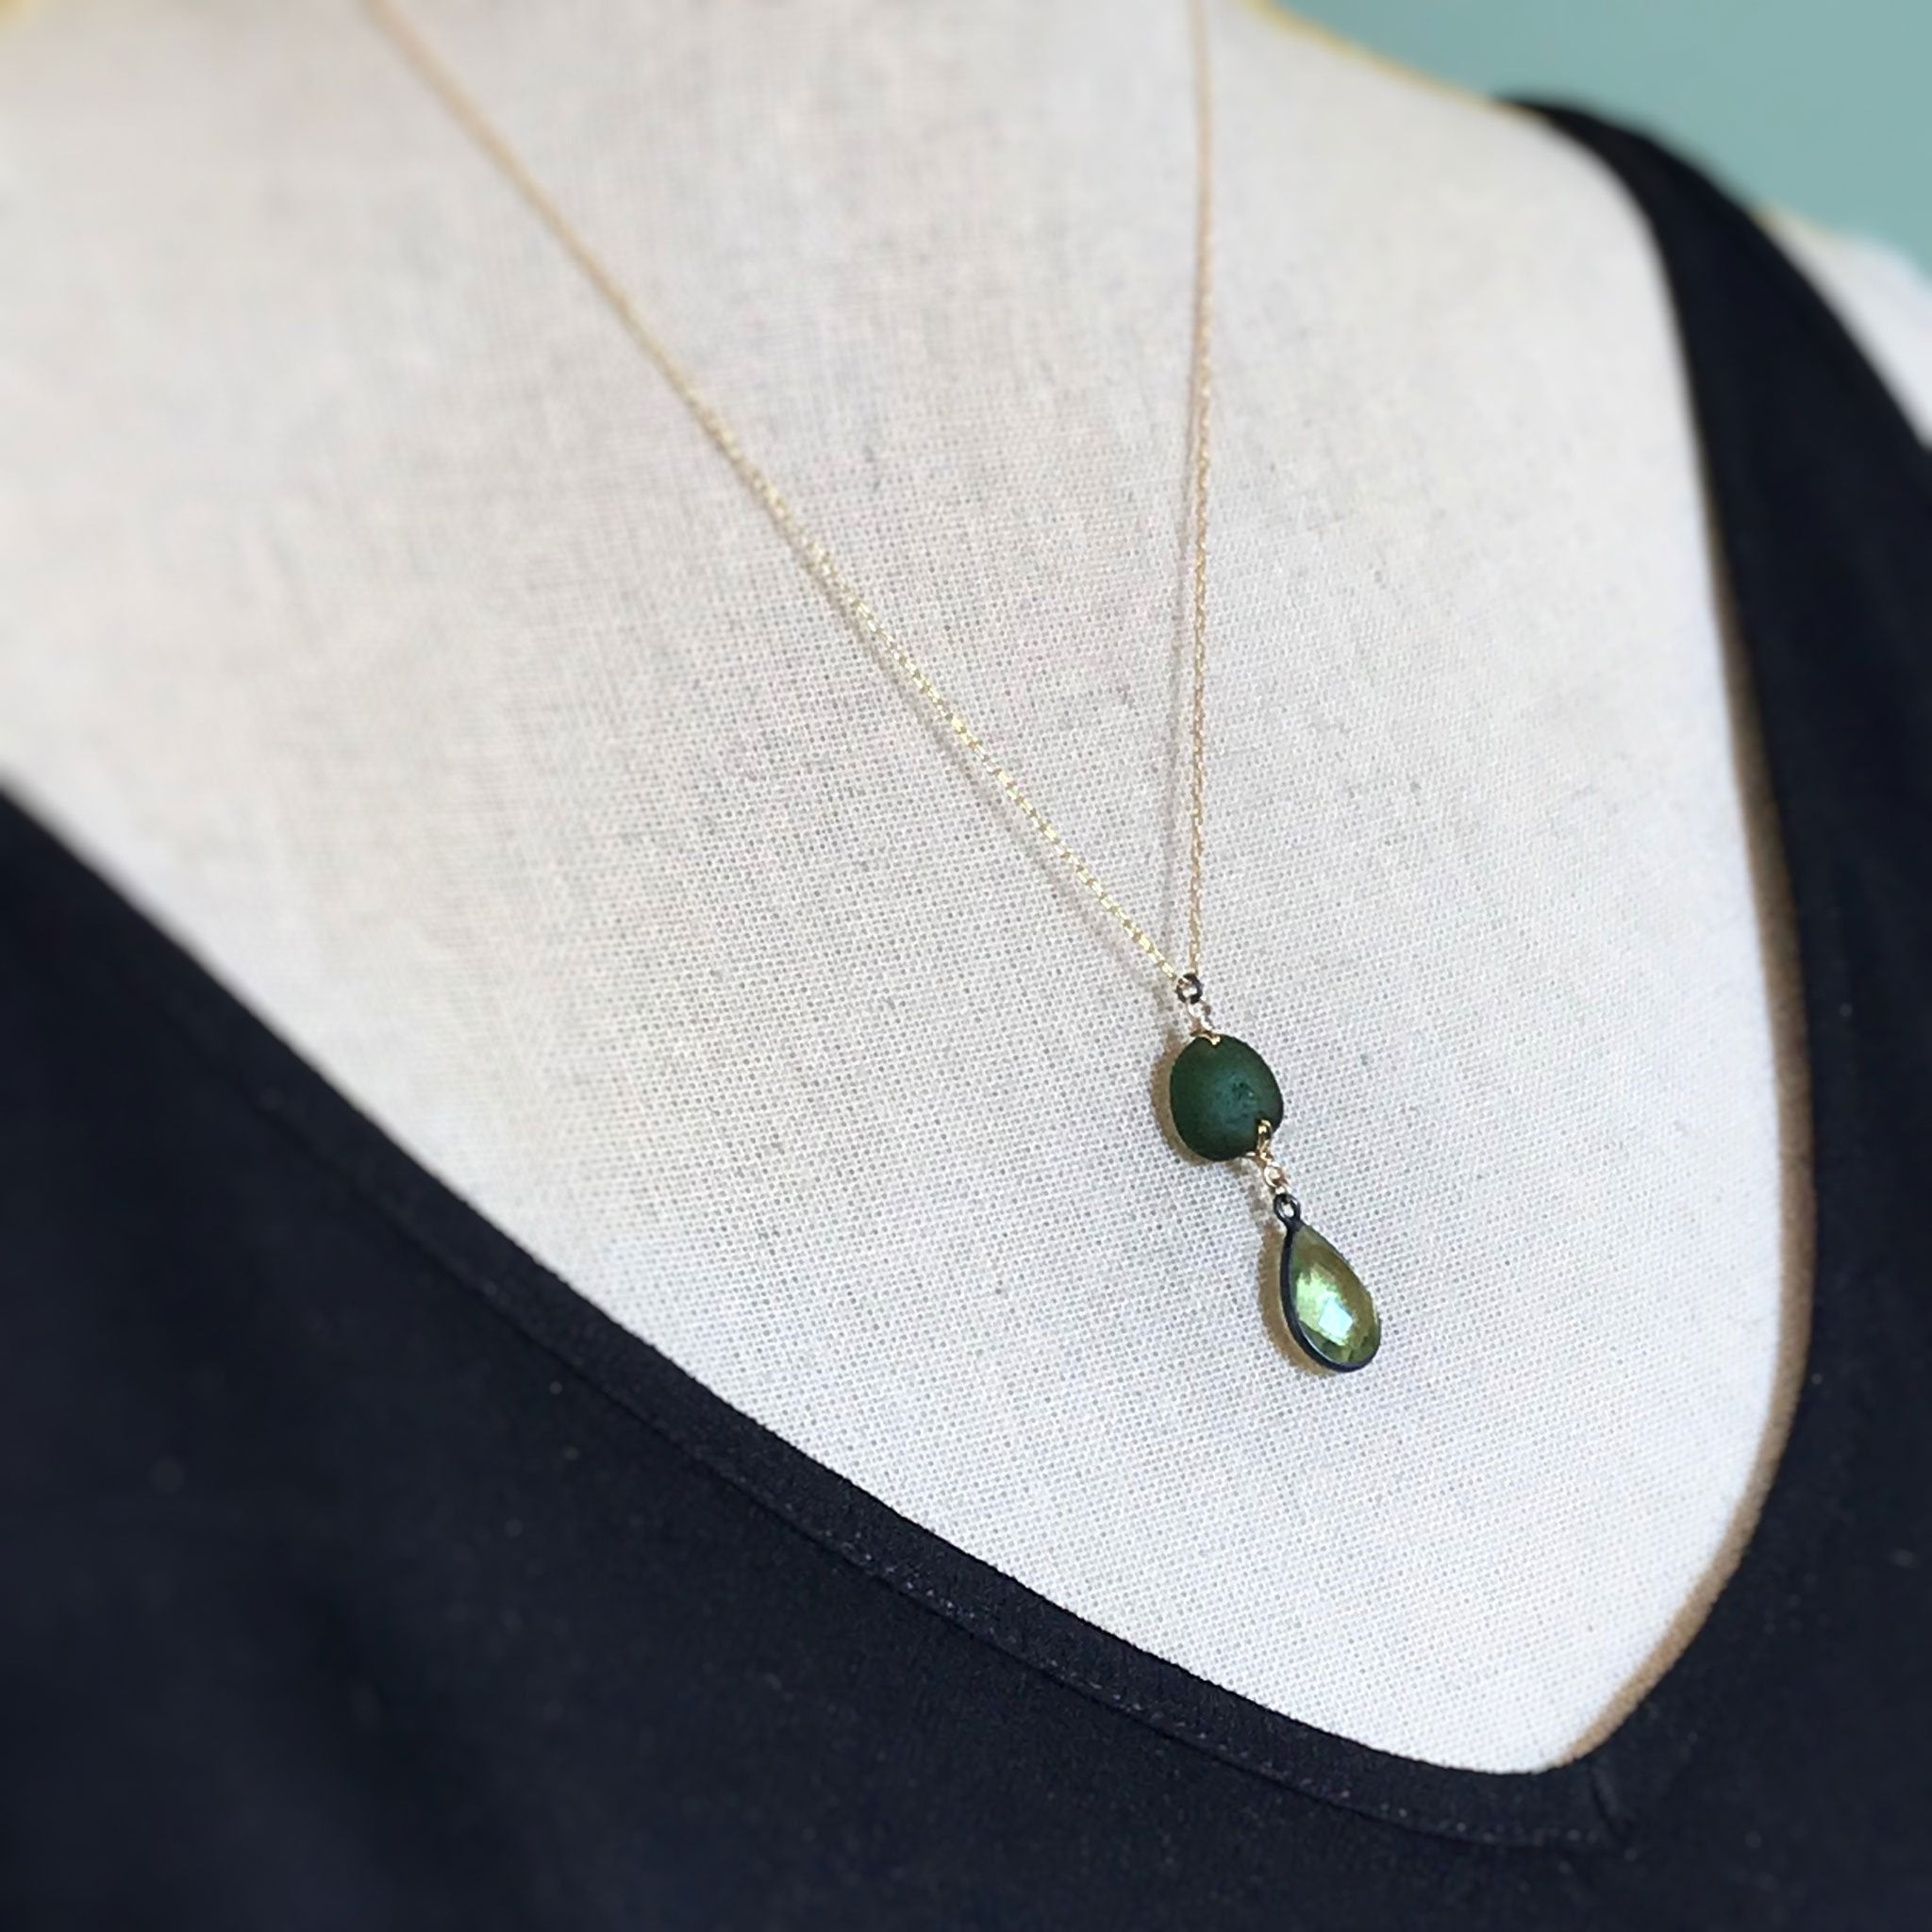 green jewellery seaglass necklace with quartz kriket Broadhurst jewellery